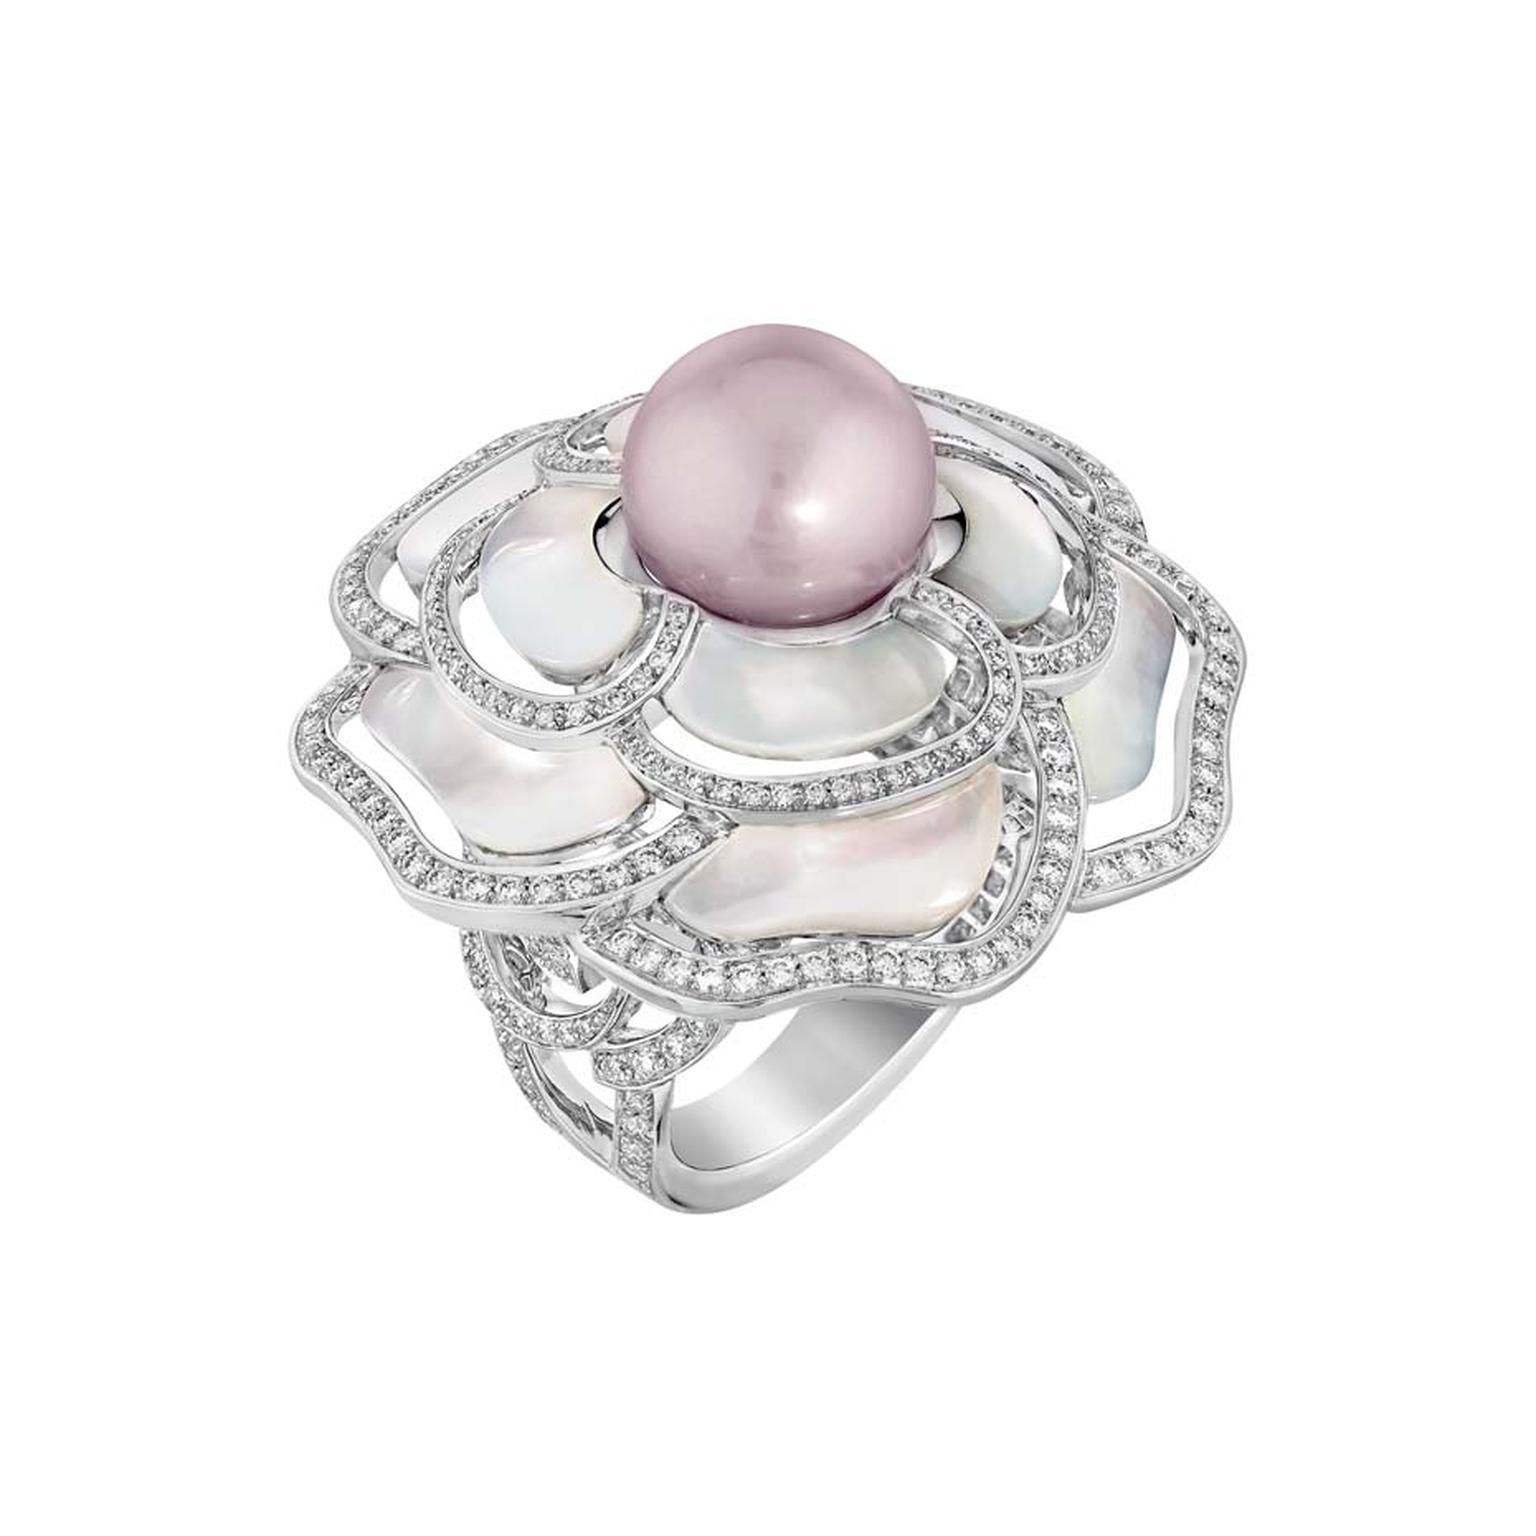 Chanel Camélia Nacré ring in white gold, set with brilliant-cut diamonds, a freshwater cultured pearl and carved mother of pearl